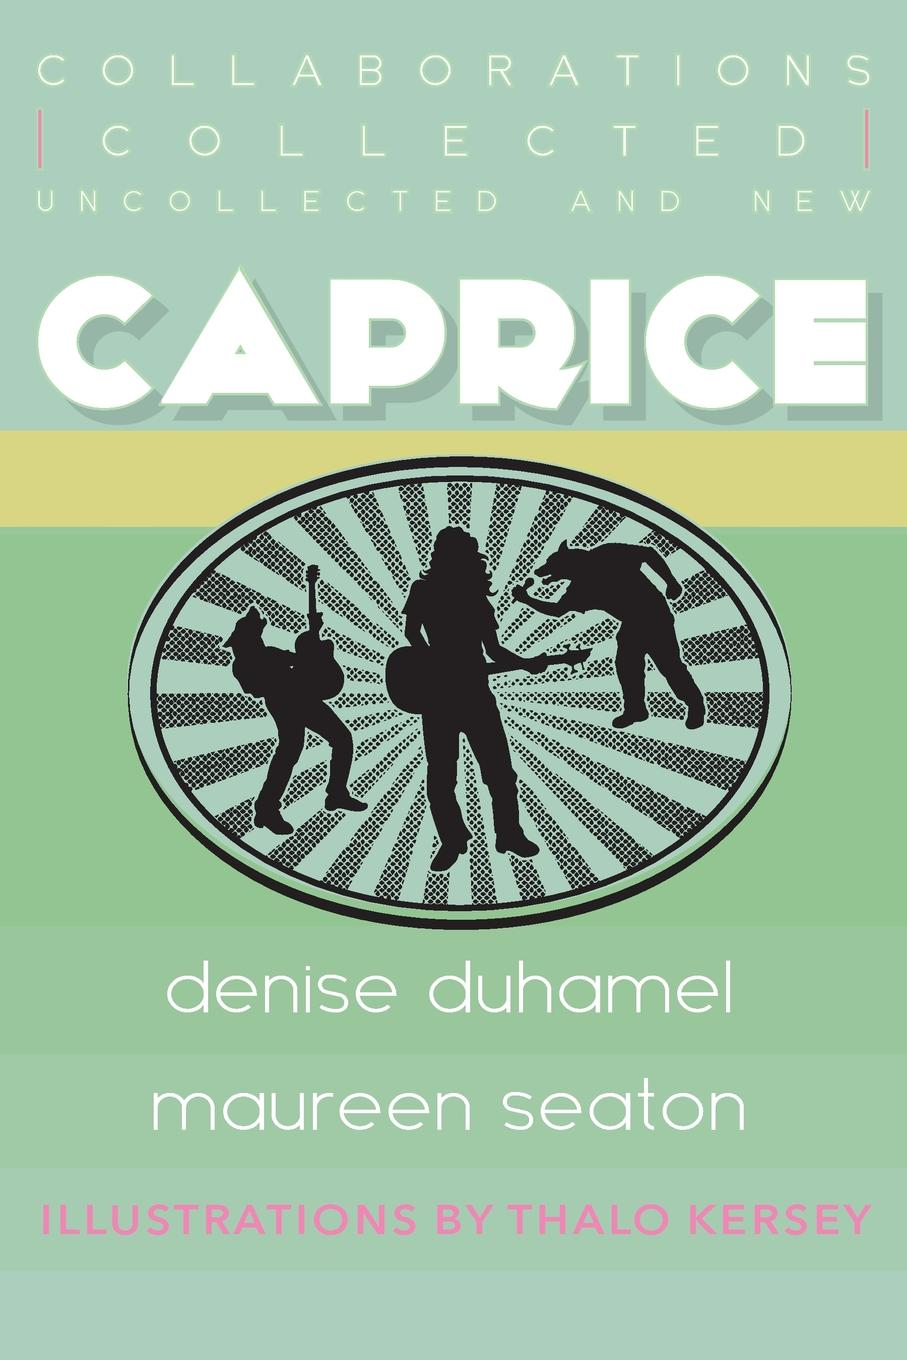 Image of Caprice: Collected, Uncollected, and New Collaborations